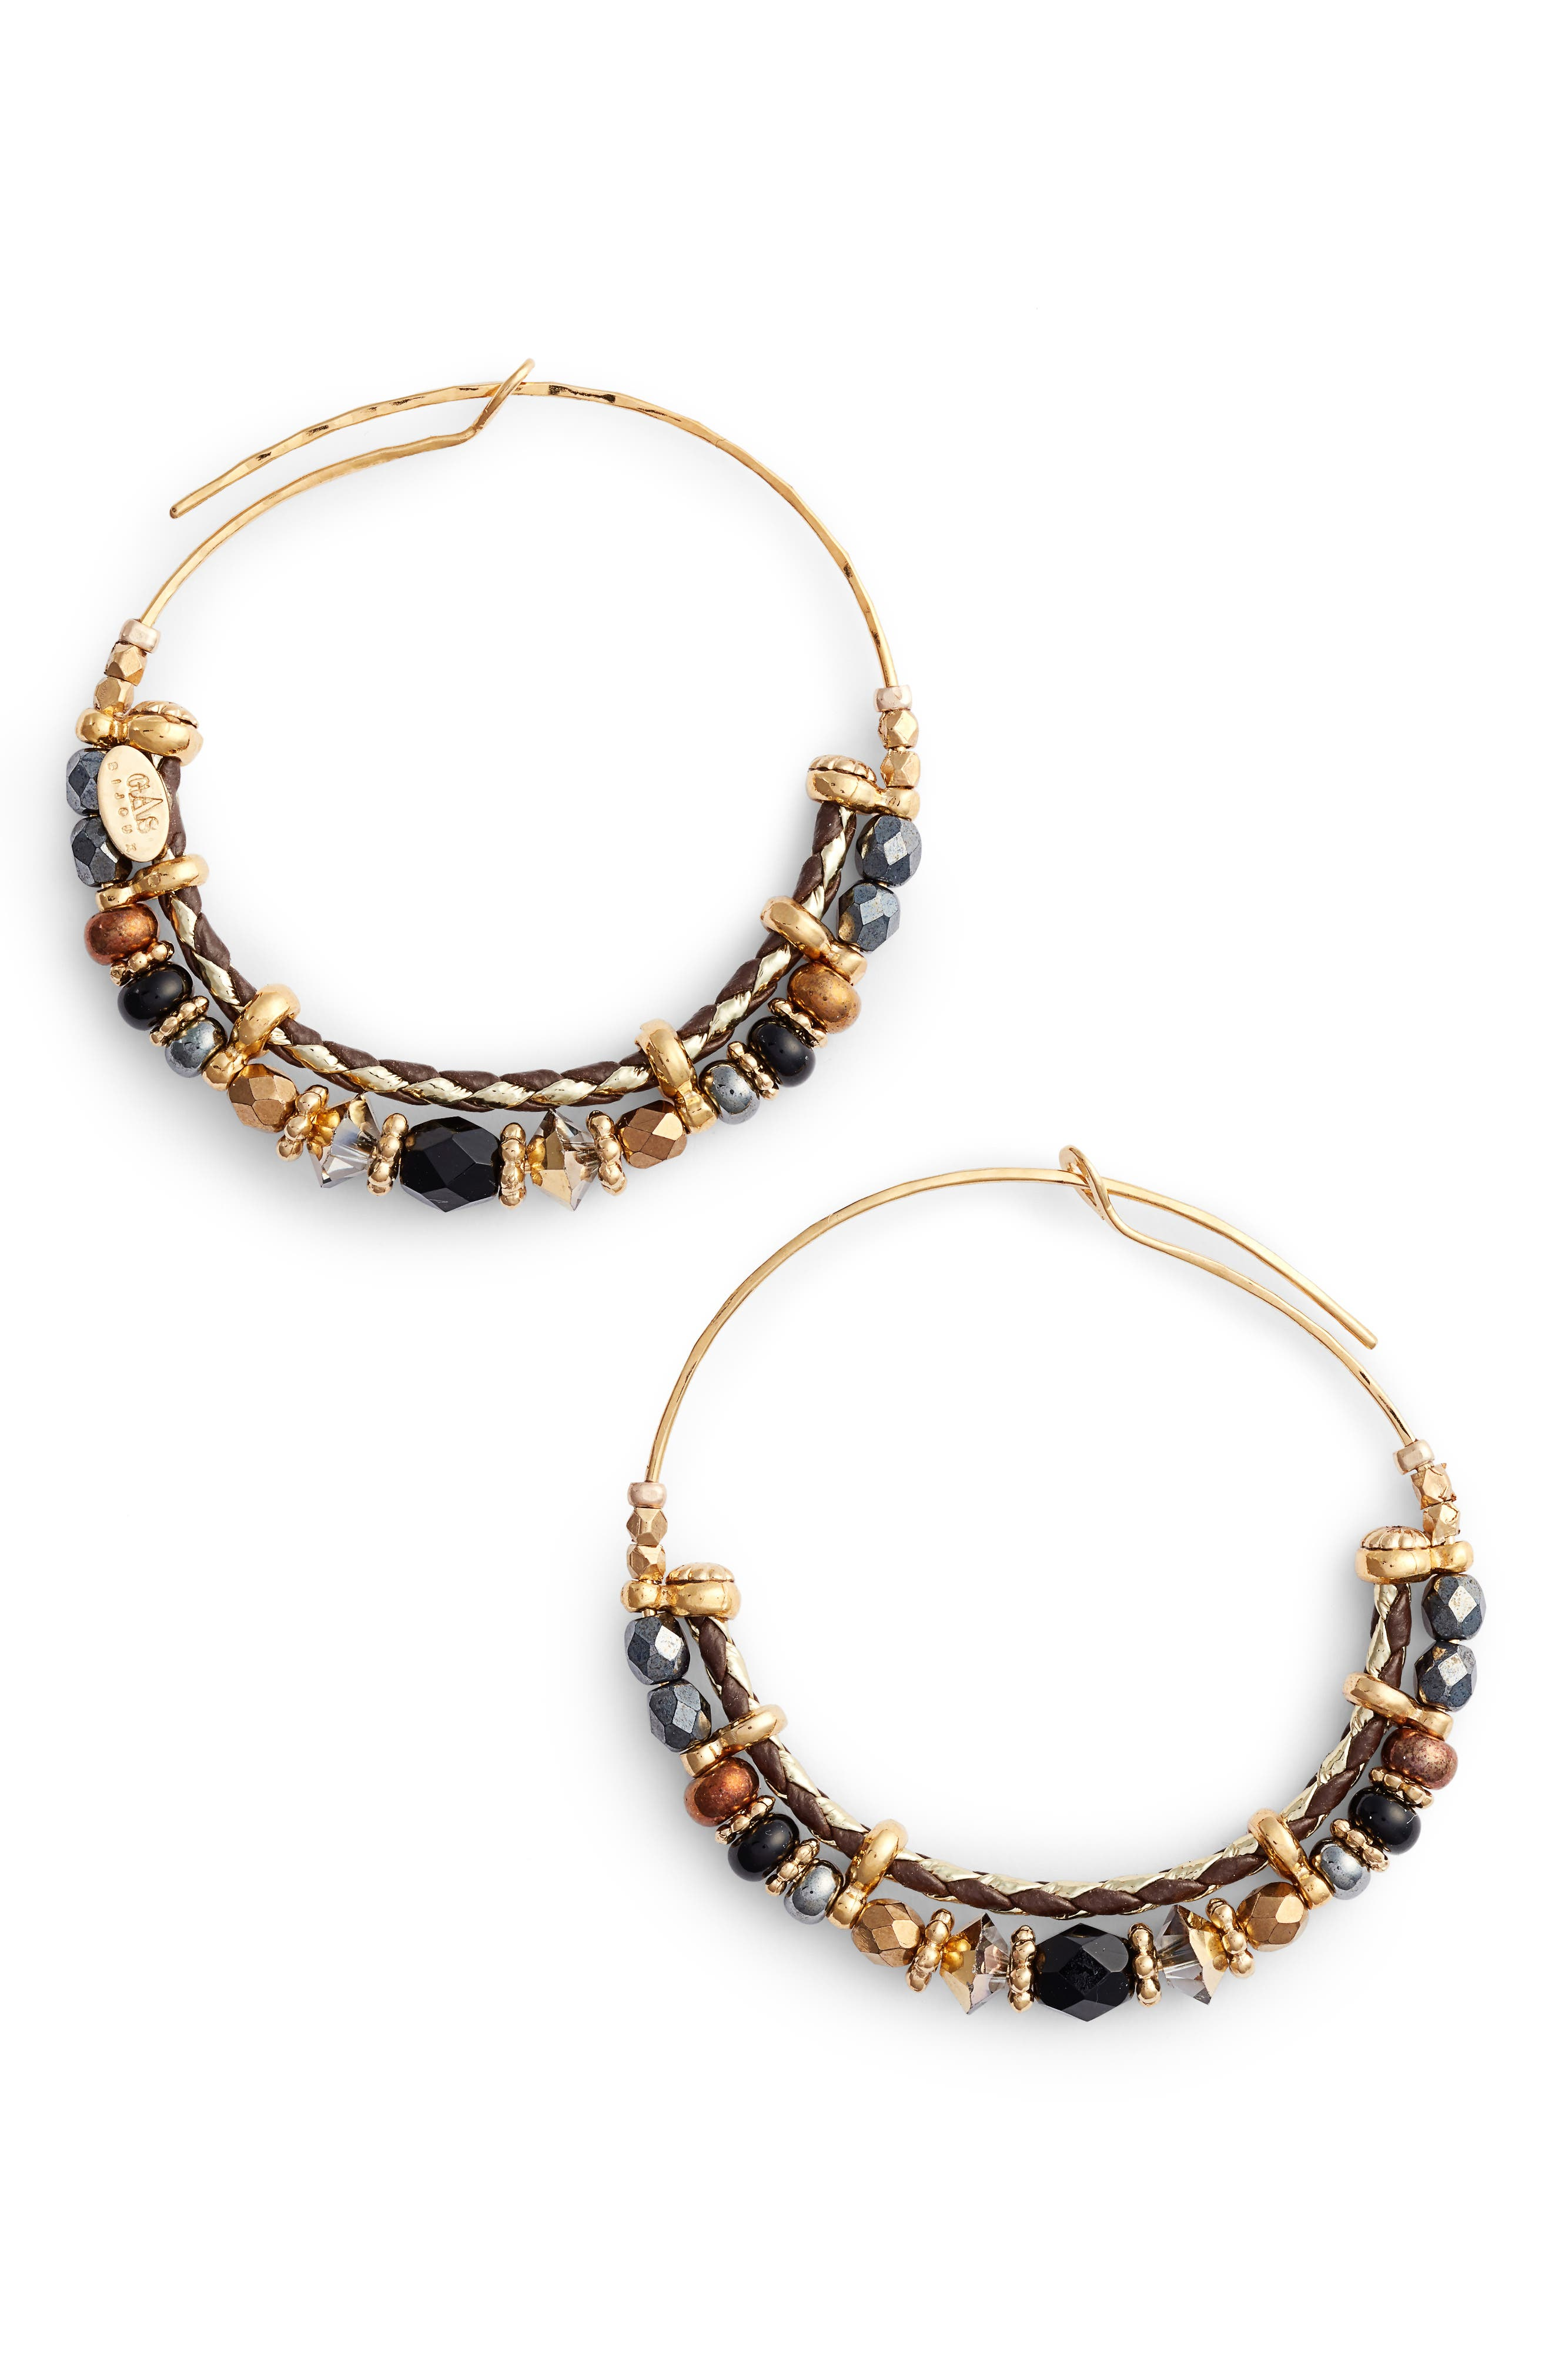 Comedia Small Hoop Earrings,                             Main thumbnail 1, color,                             Black/ Gold